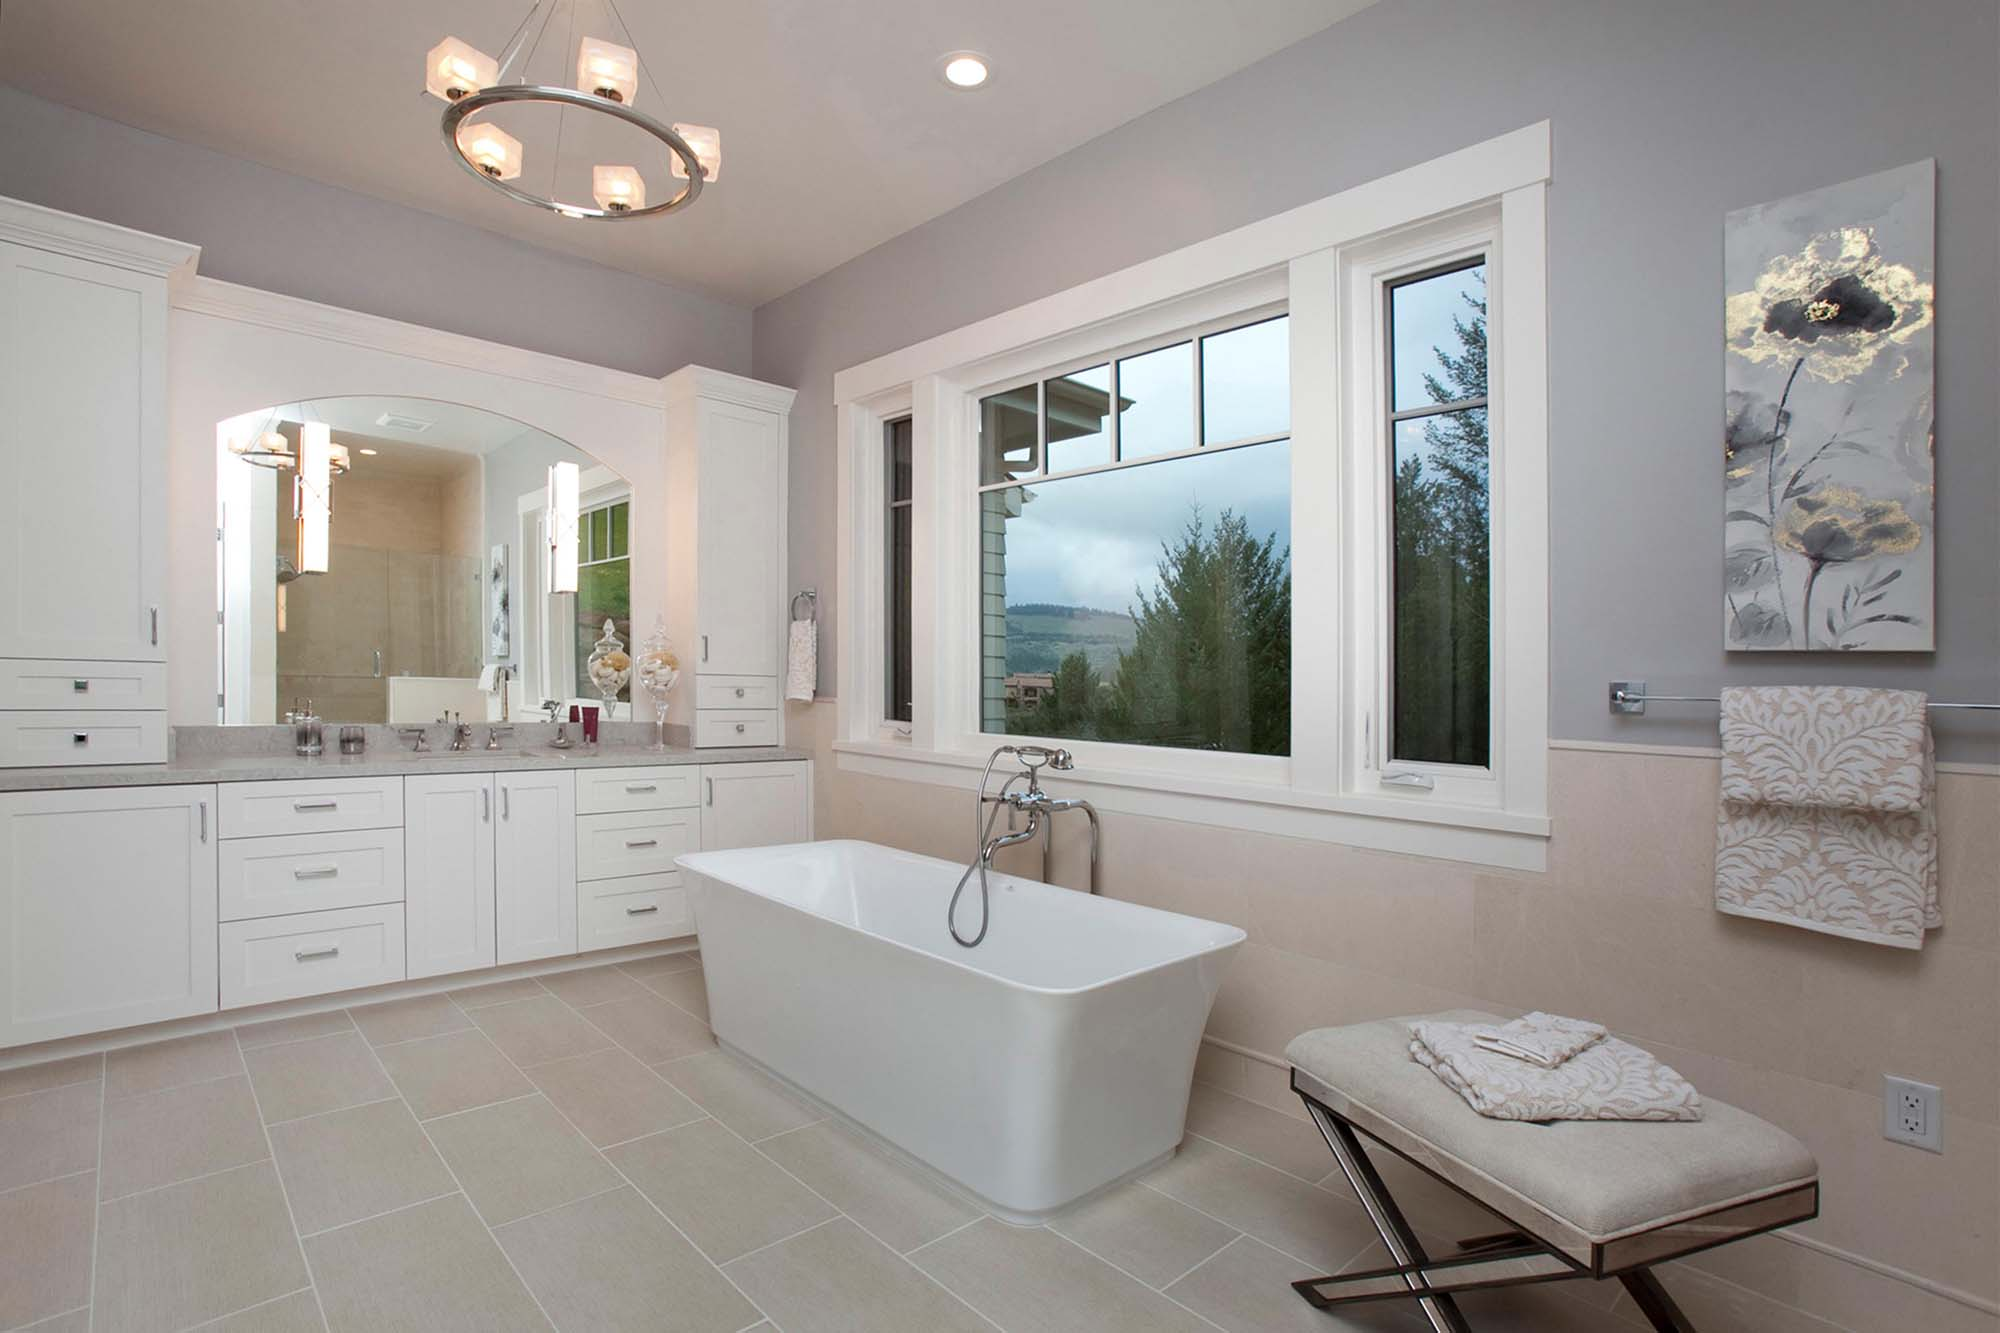 Modern bathroom with cabinet and mirror